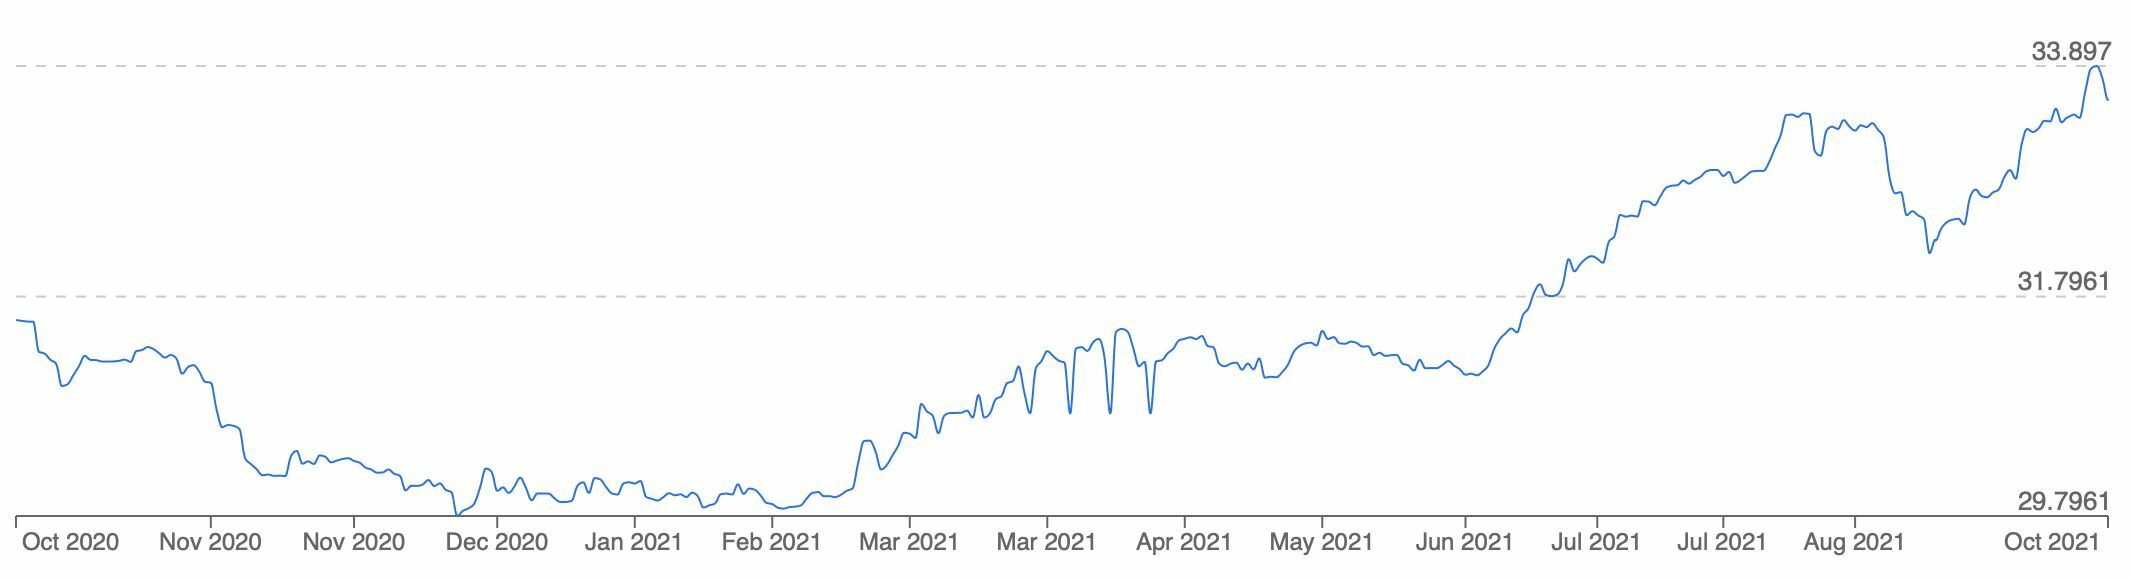 Thai baht to continue dropping against the USD   News by Thaiger